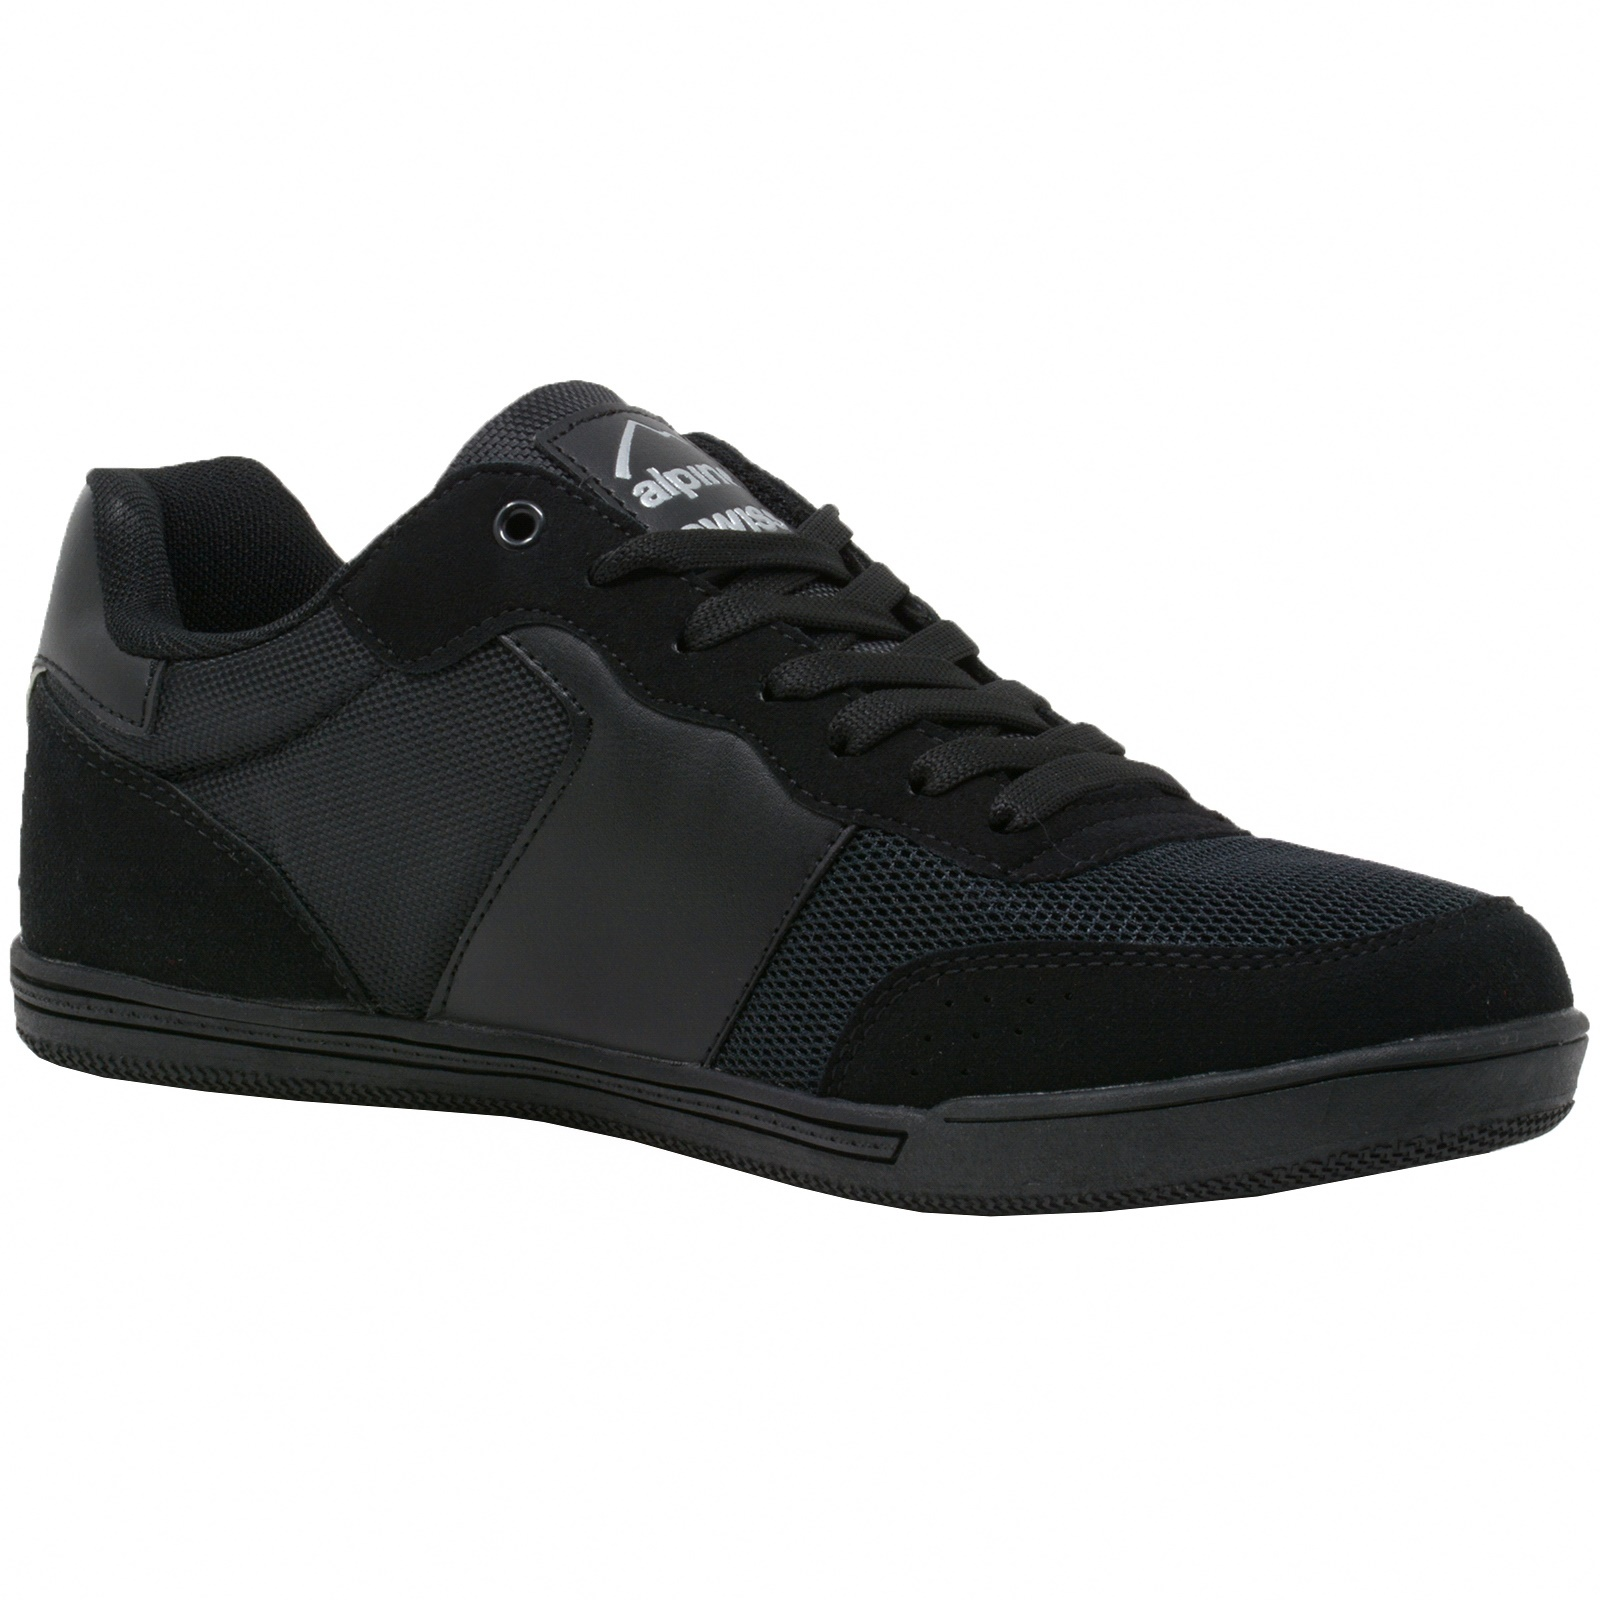 Alpine-Swiss-Liam-Mens-Fashion-Sneakers-Suede-Trim-Low-Top-Lace-Up-Tennis-Shoes thumbnail 20